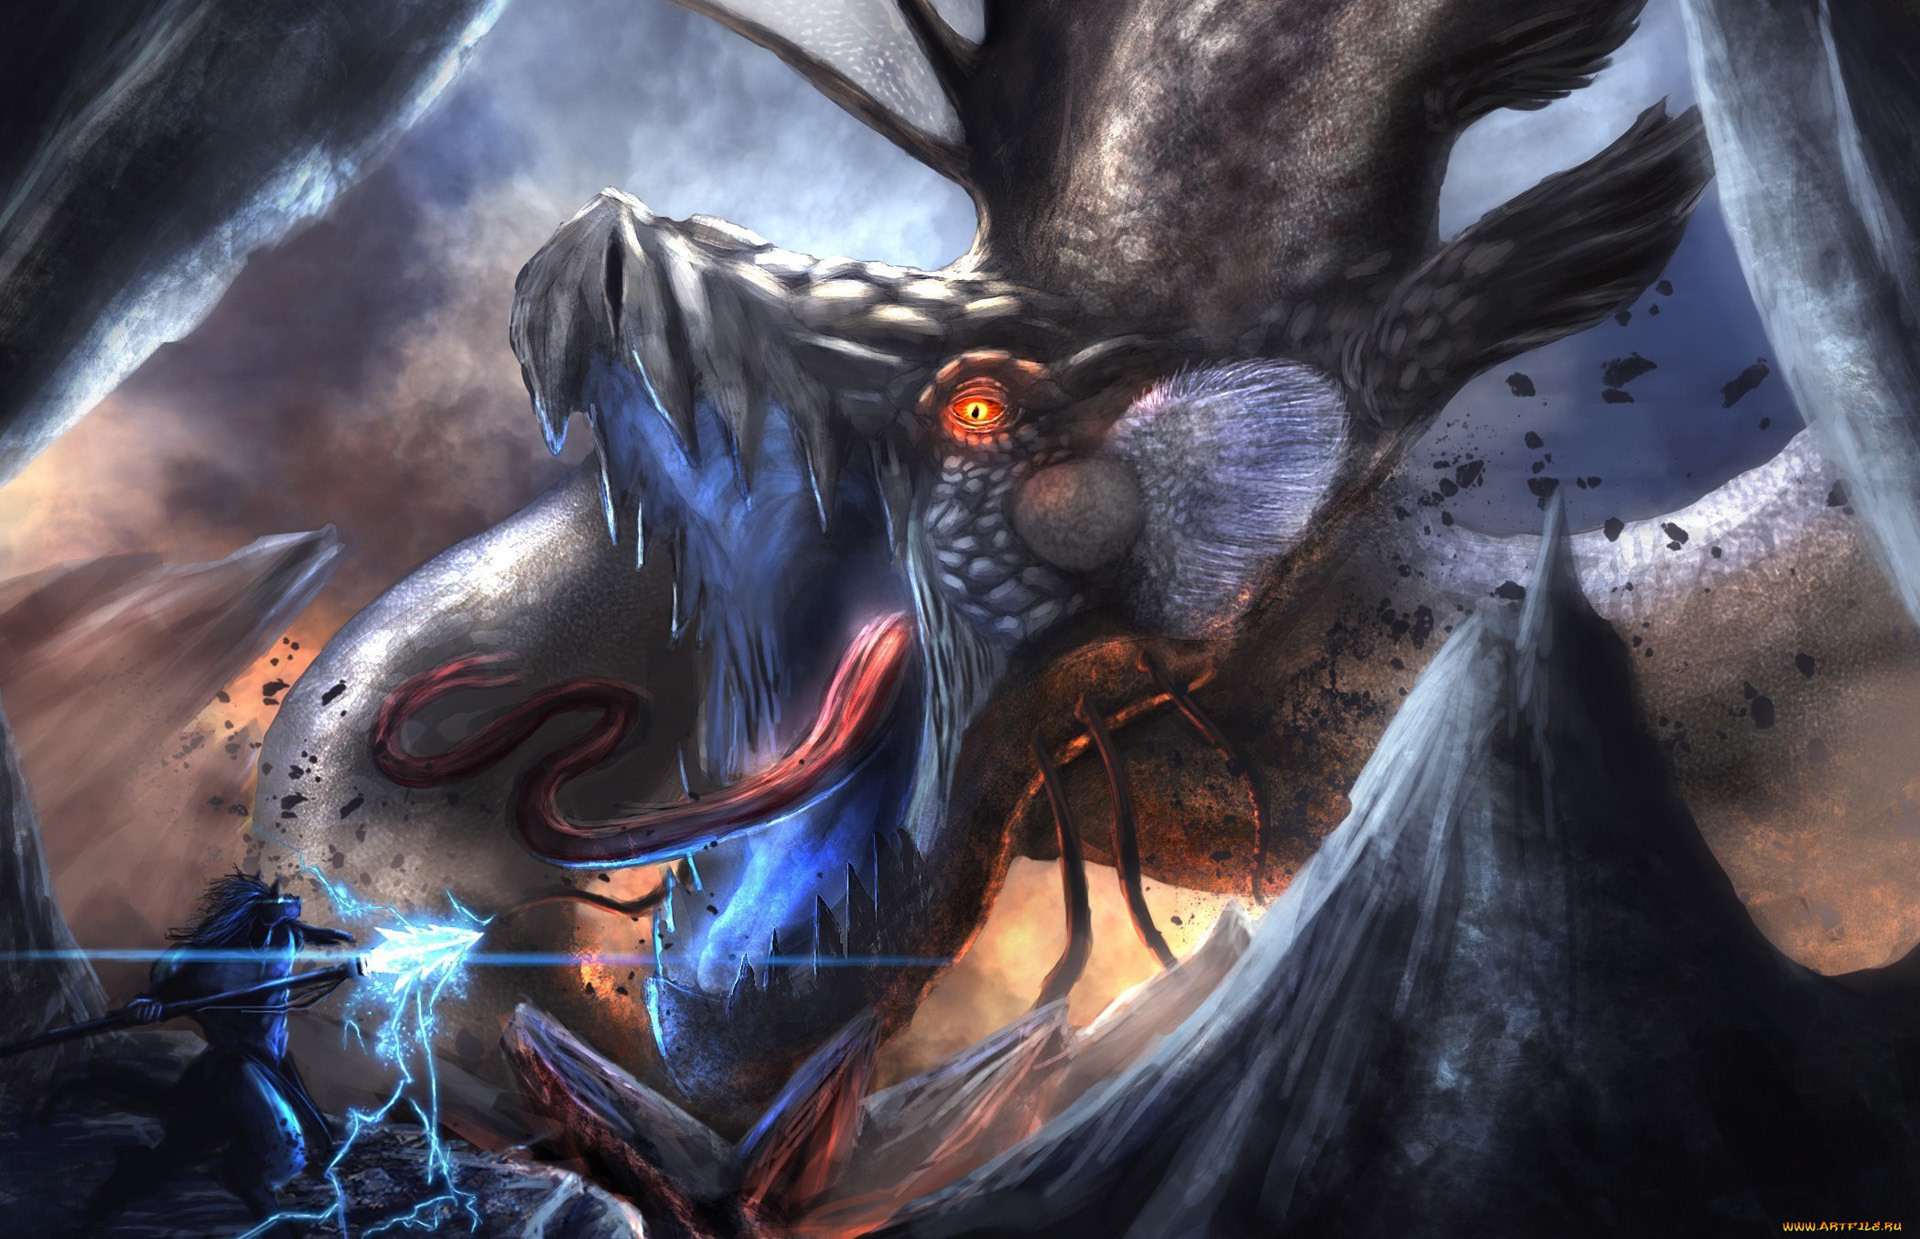 1920x1239 Epic Anime Fight Wallpaper Epic fantasy warrior dragon